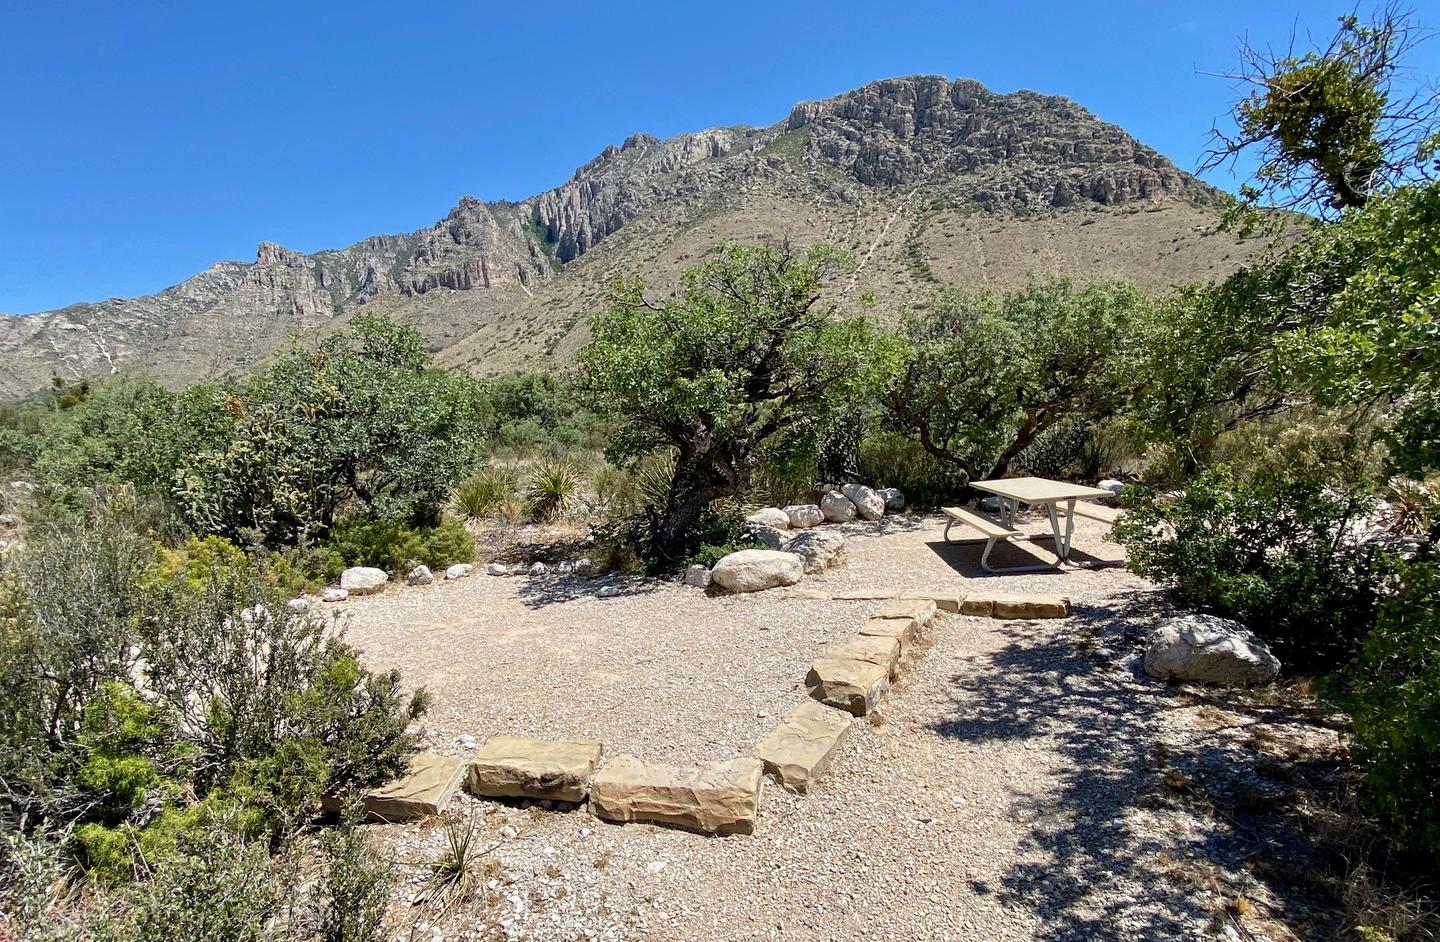 Tent campsite 18, surrounded by desert vegetation and with mountain views in the background.  Tent pad is delineated by large rocks.Tent campsite 18 shown with Hunter Peak in the background.